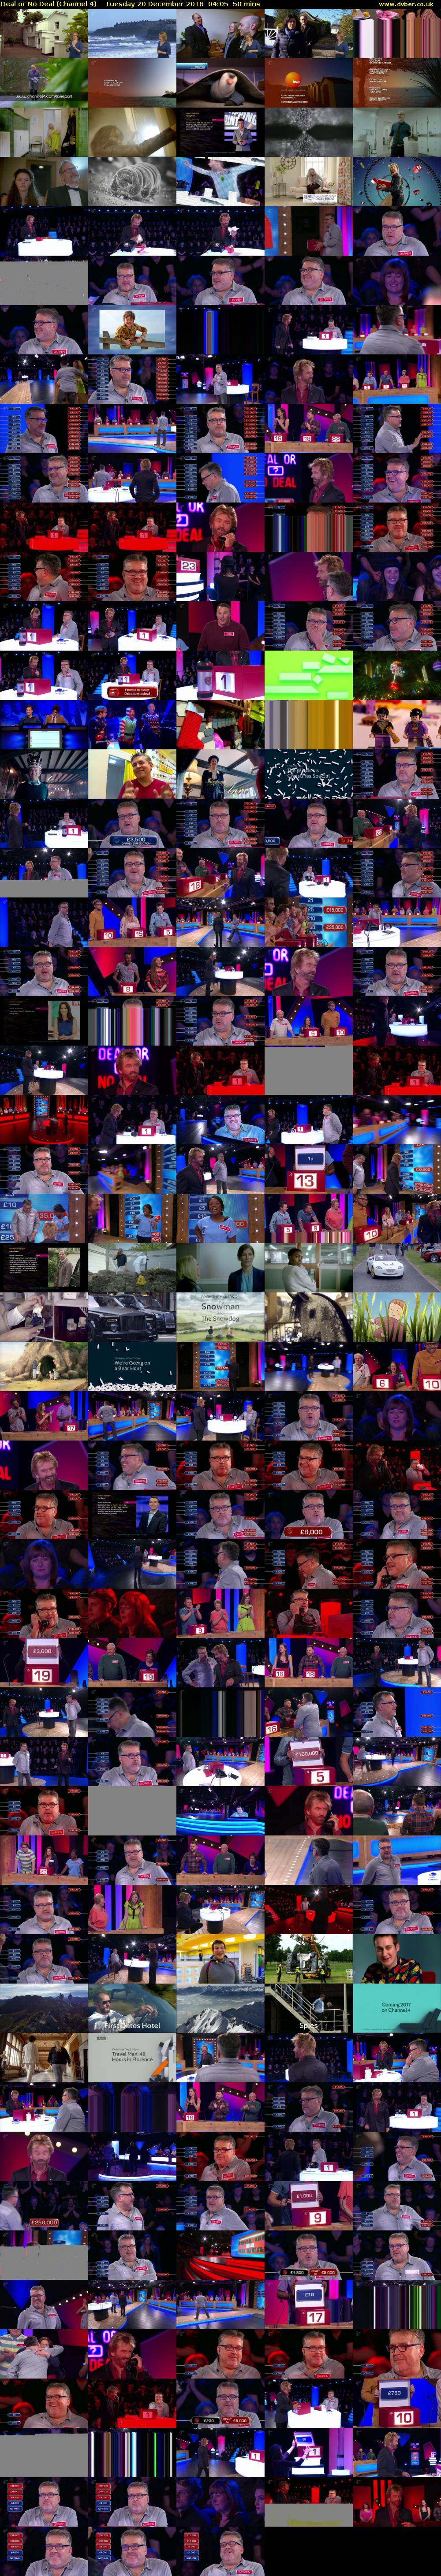 Deal Or No Deal Channel 4 Hd 2016 12 20 0405